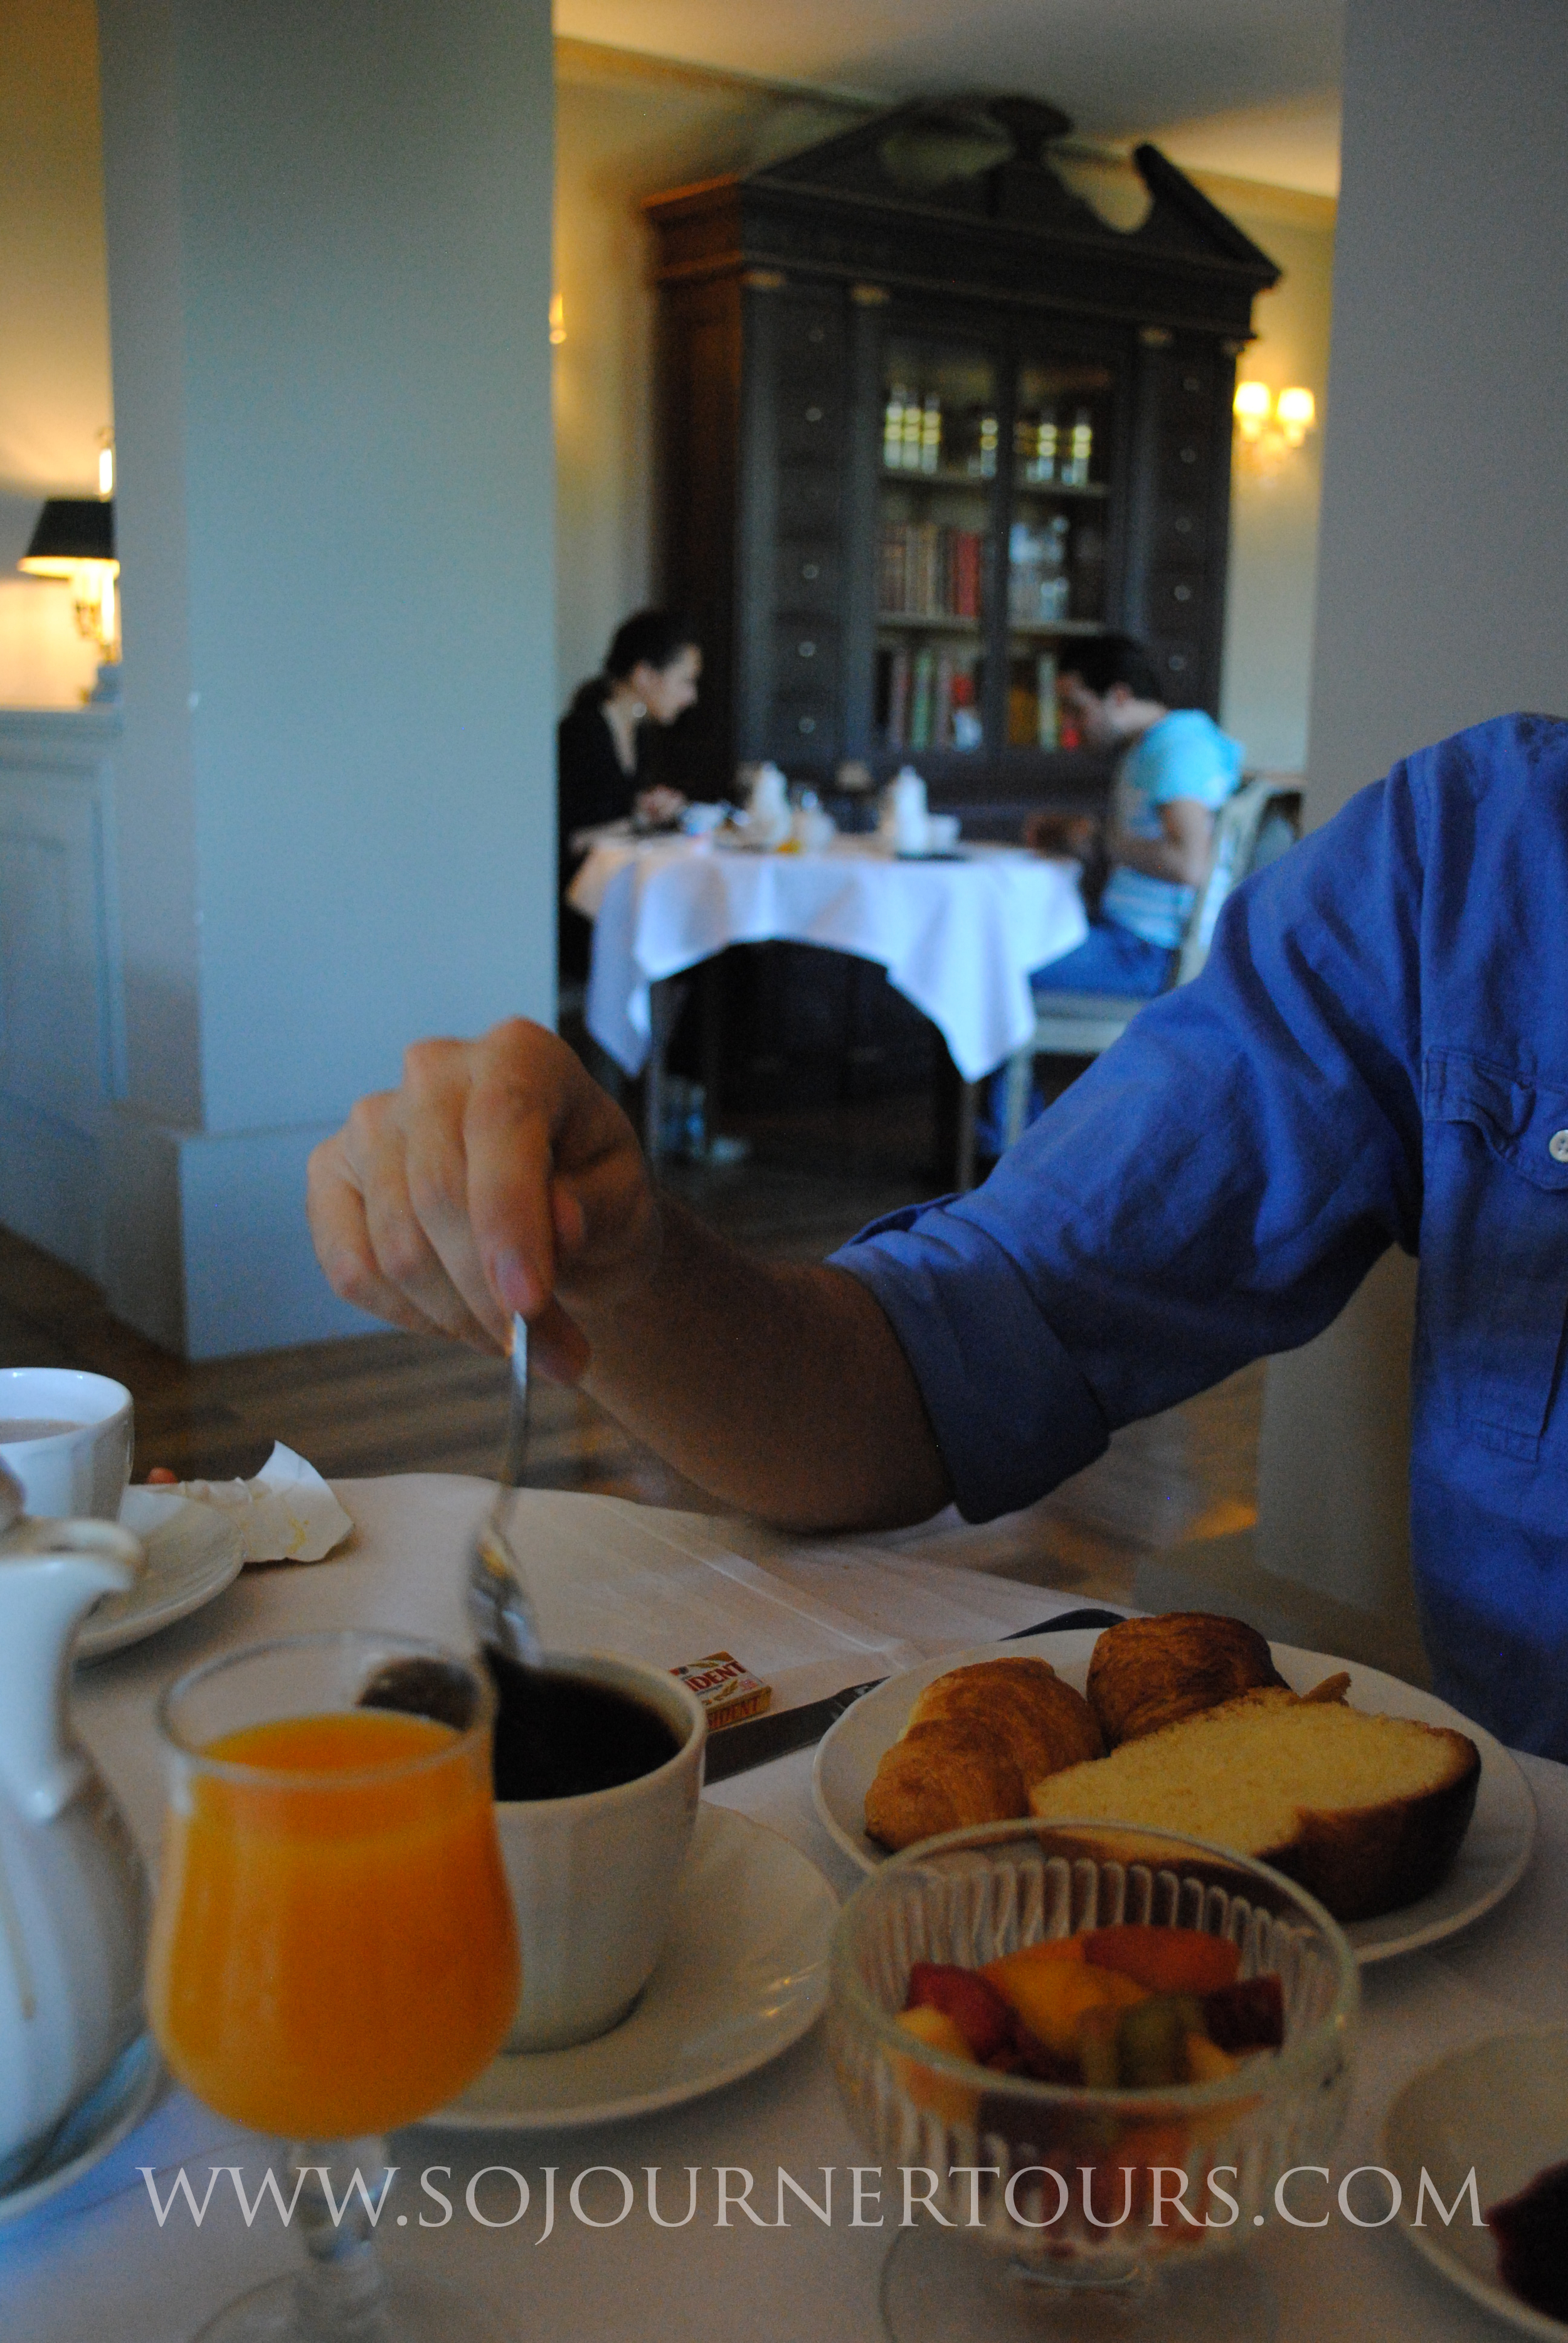 Breakfast includes fresh squeezed orange juice, locally baked breads, fruits, eggs, local meats & cheeses.